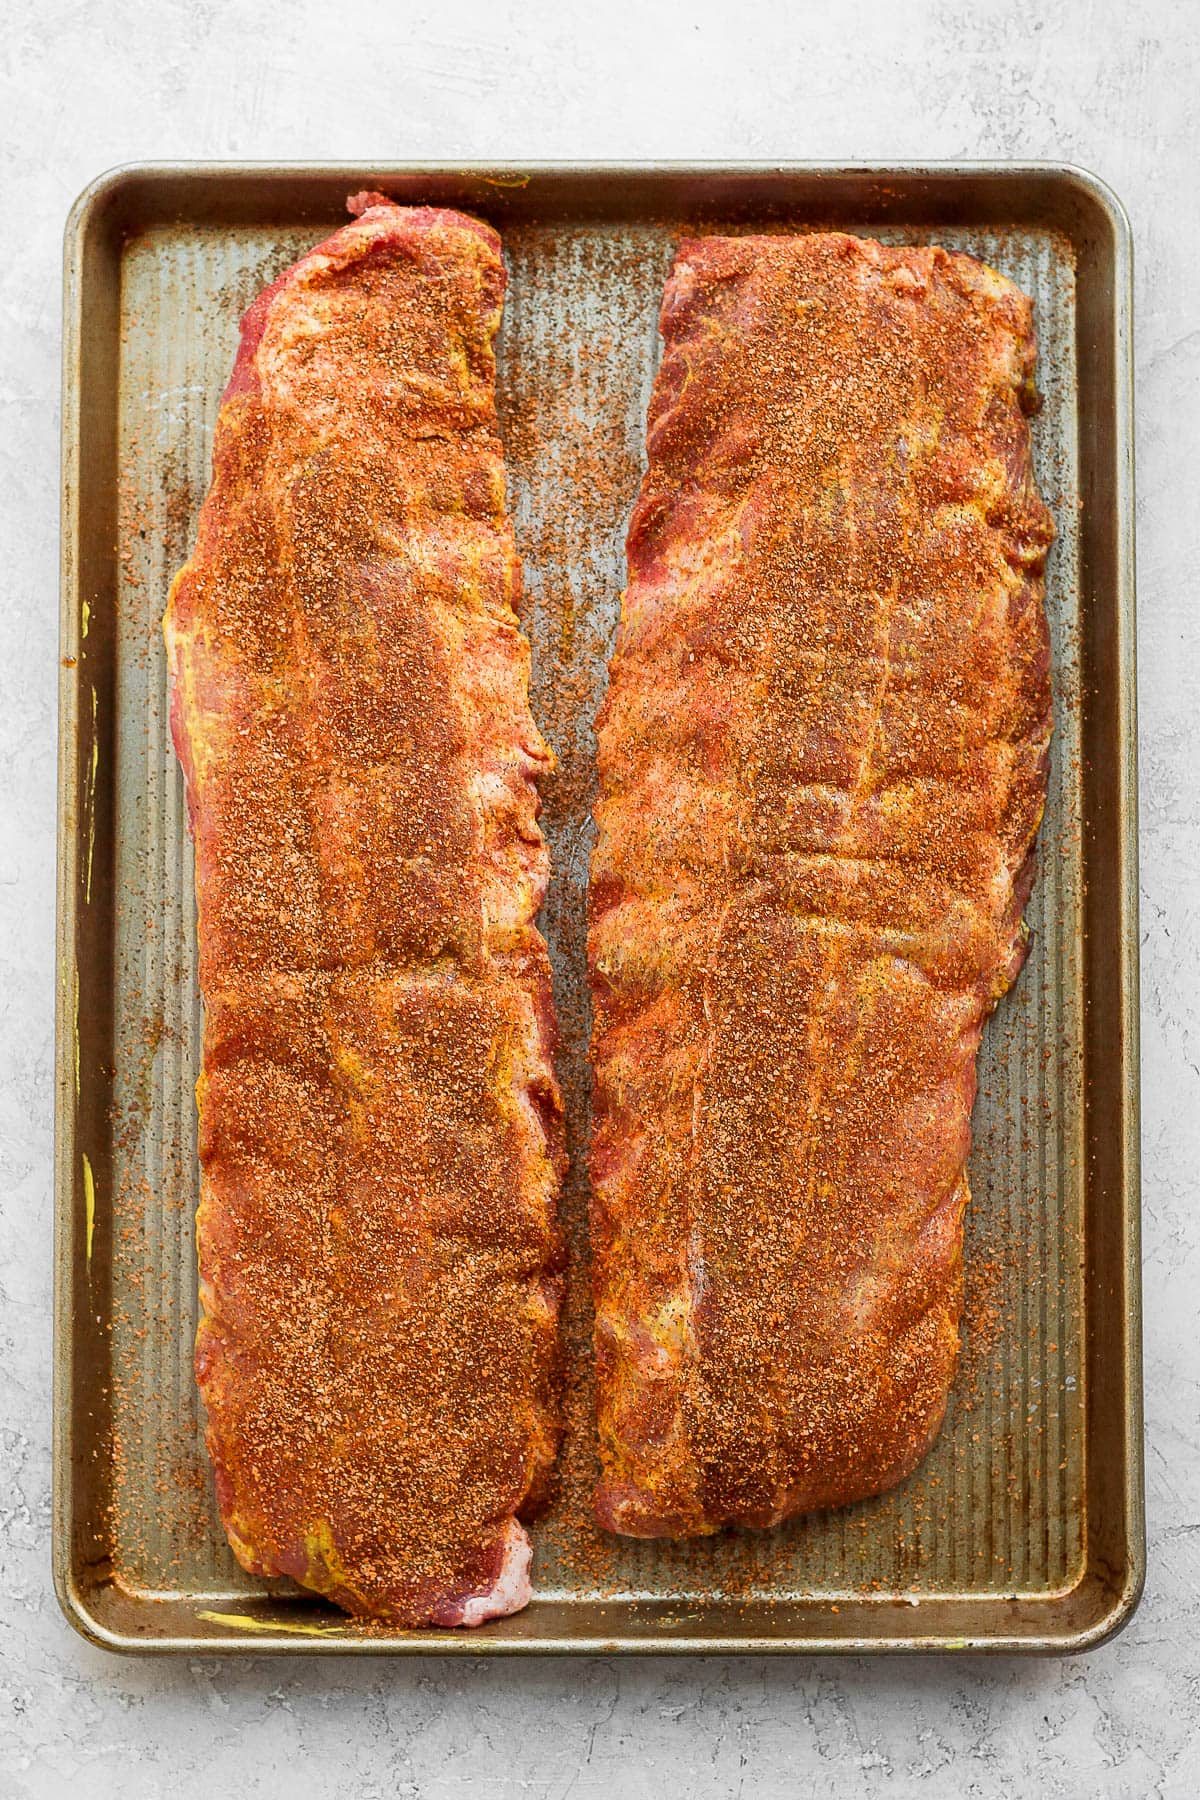 Two racks of ribs sitting on a metal baking sheet and dry rub rubbed all over them.